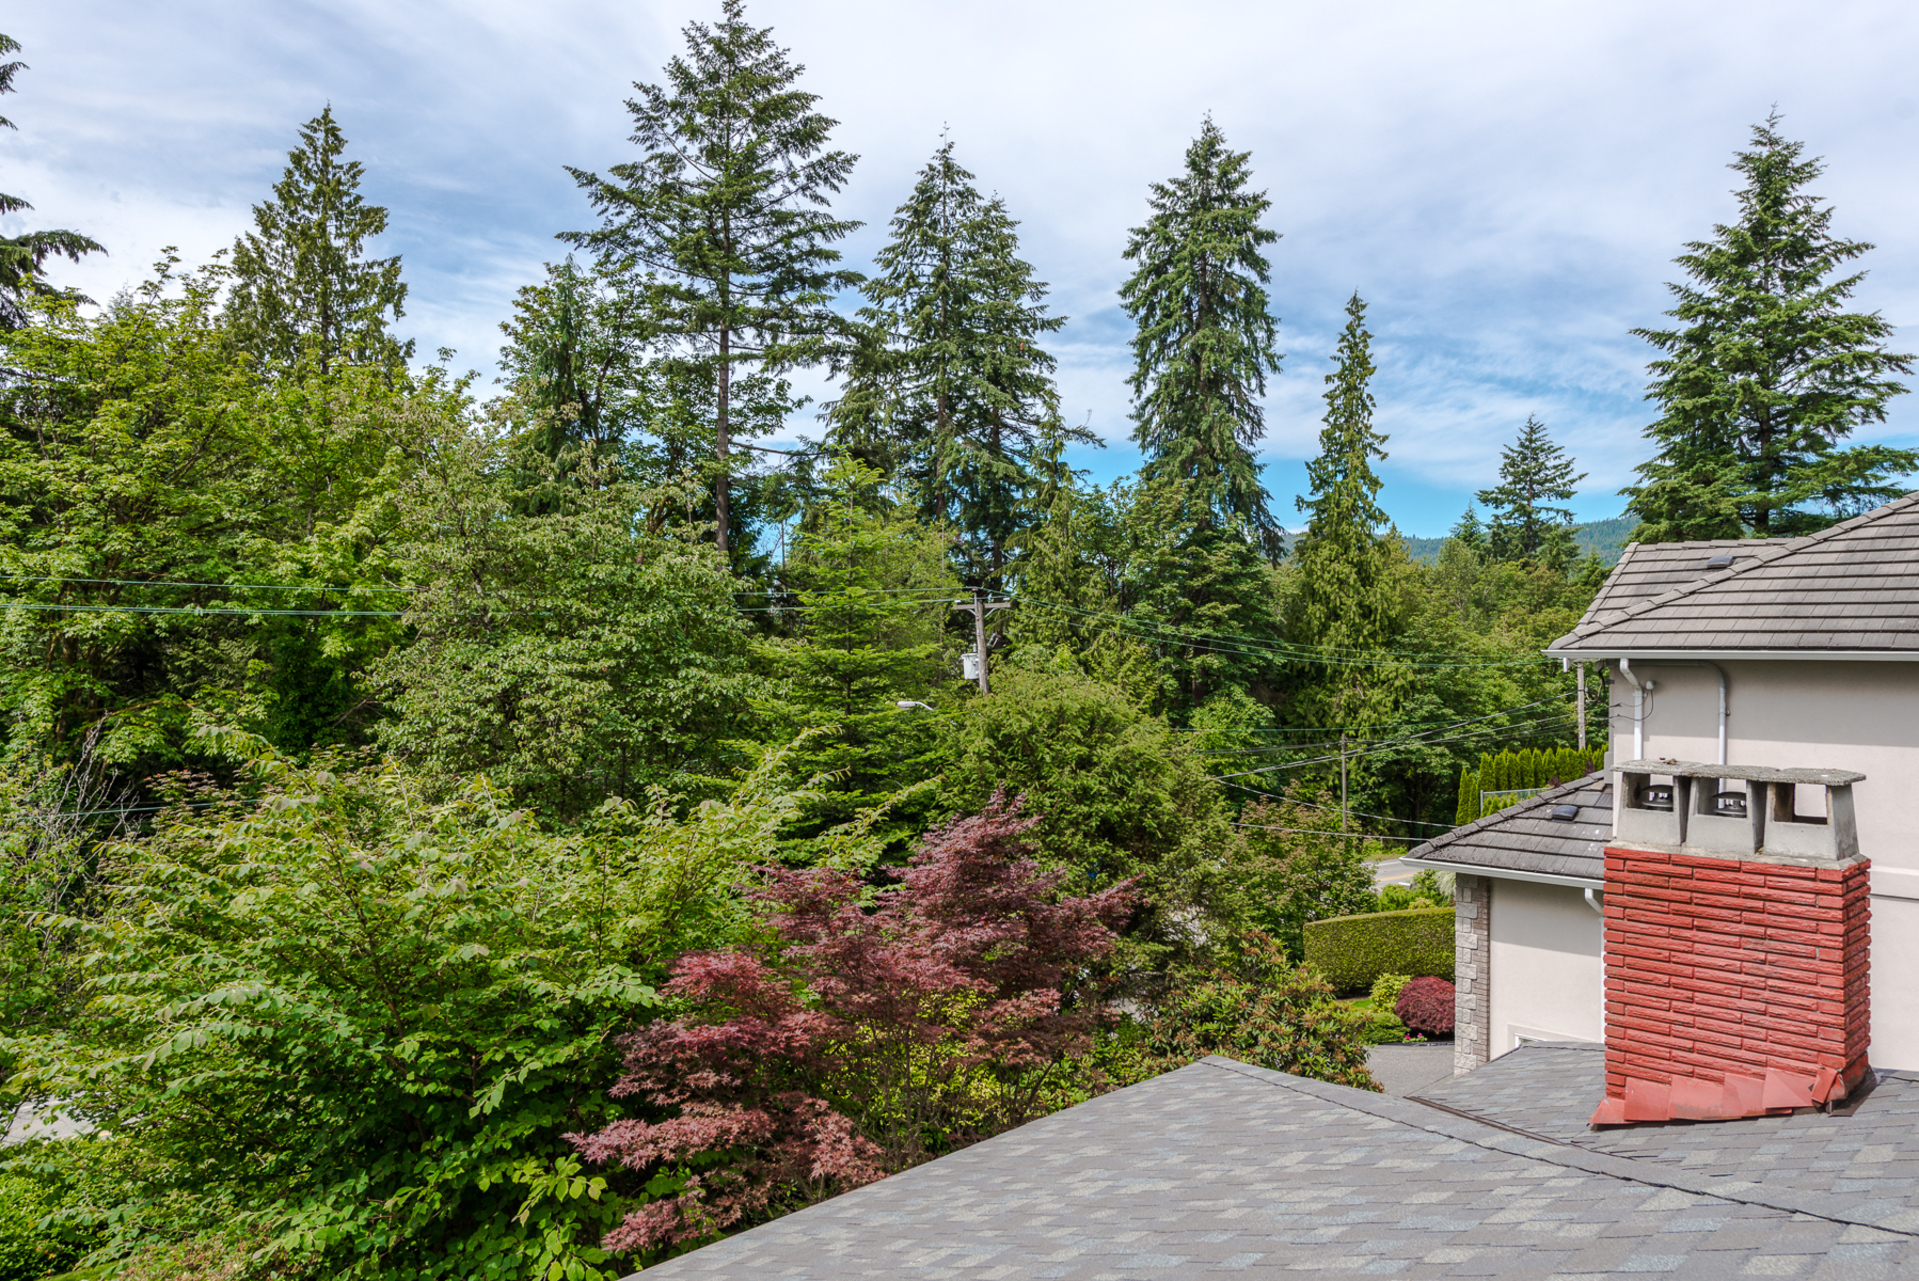 1395-Ioco-Road-Port-Moody-360hometours-24s at 1395 Ioco Road, Barber Street, Port Moody